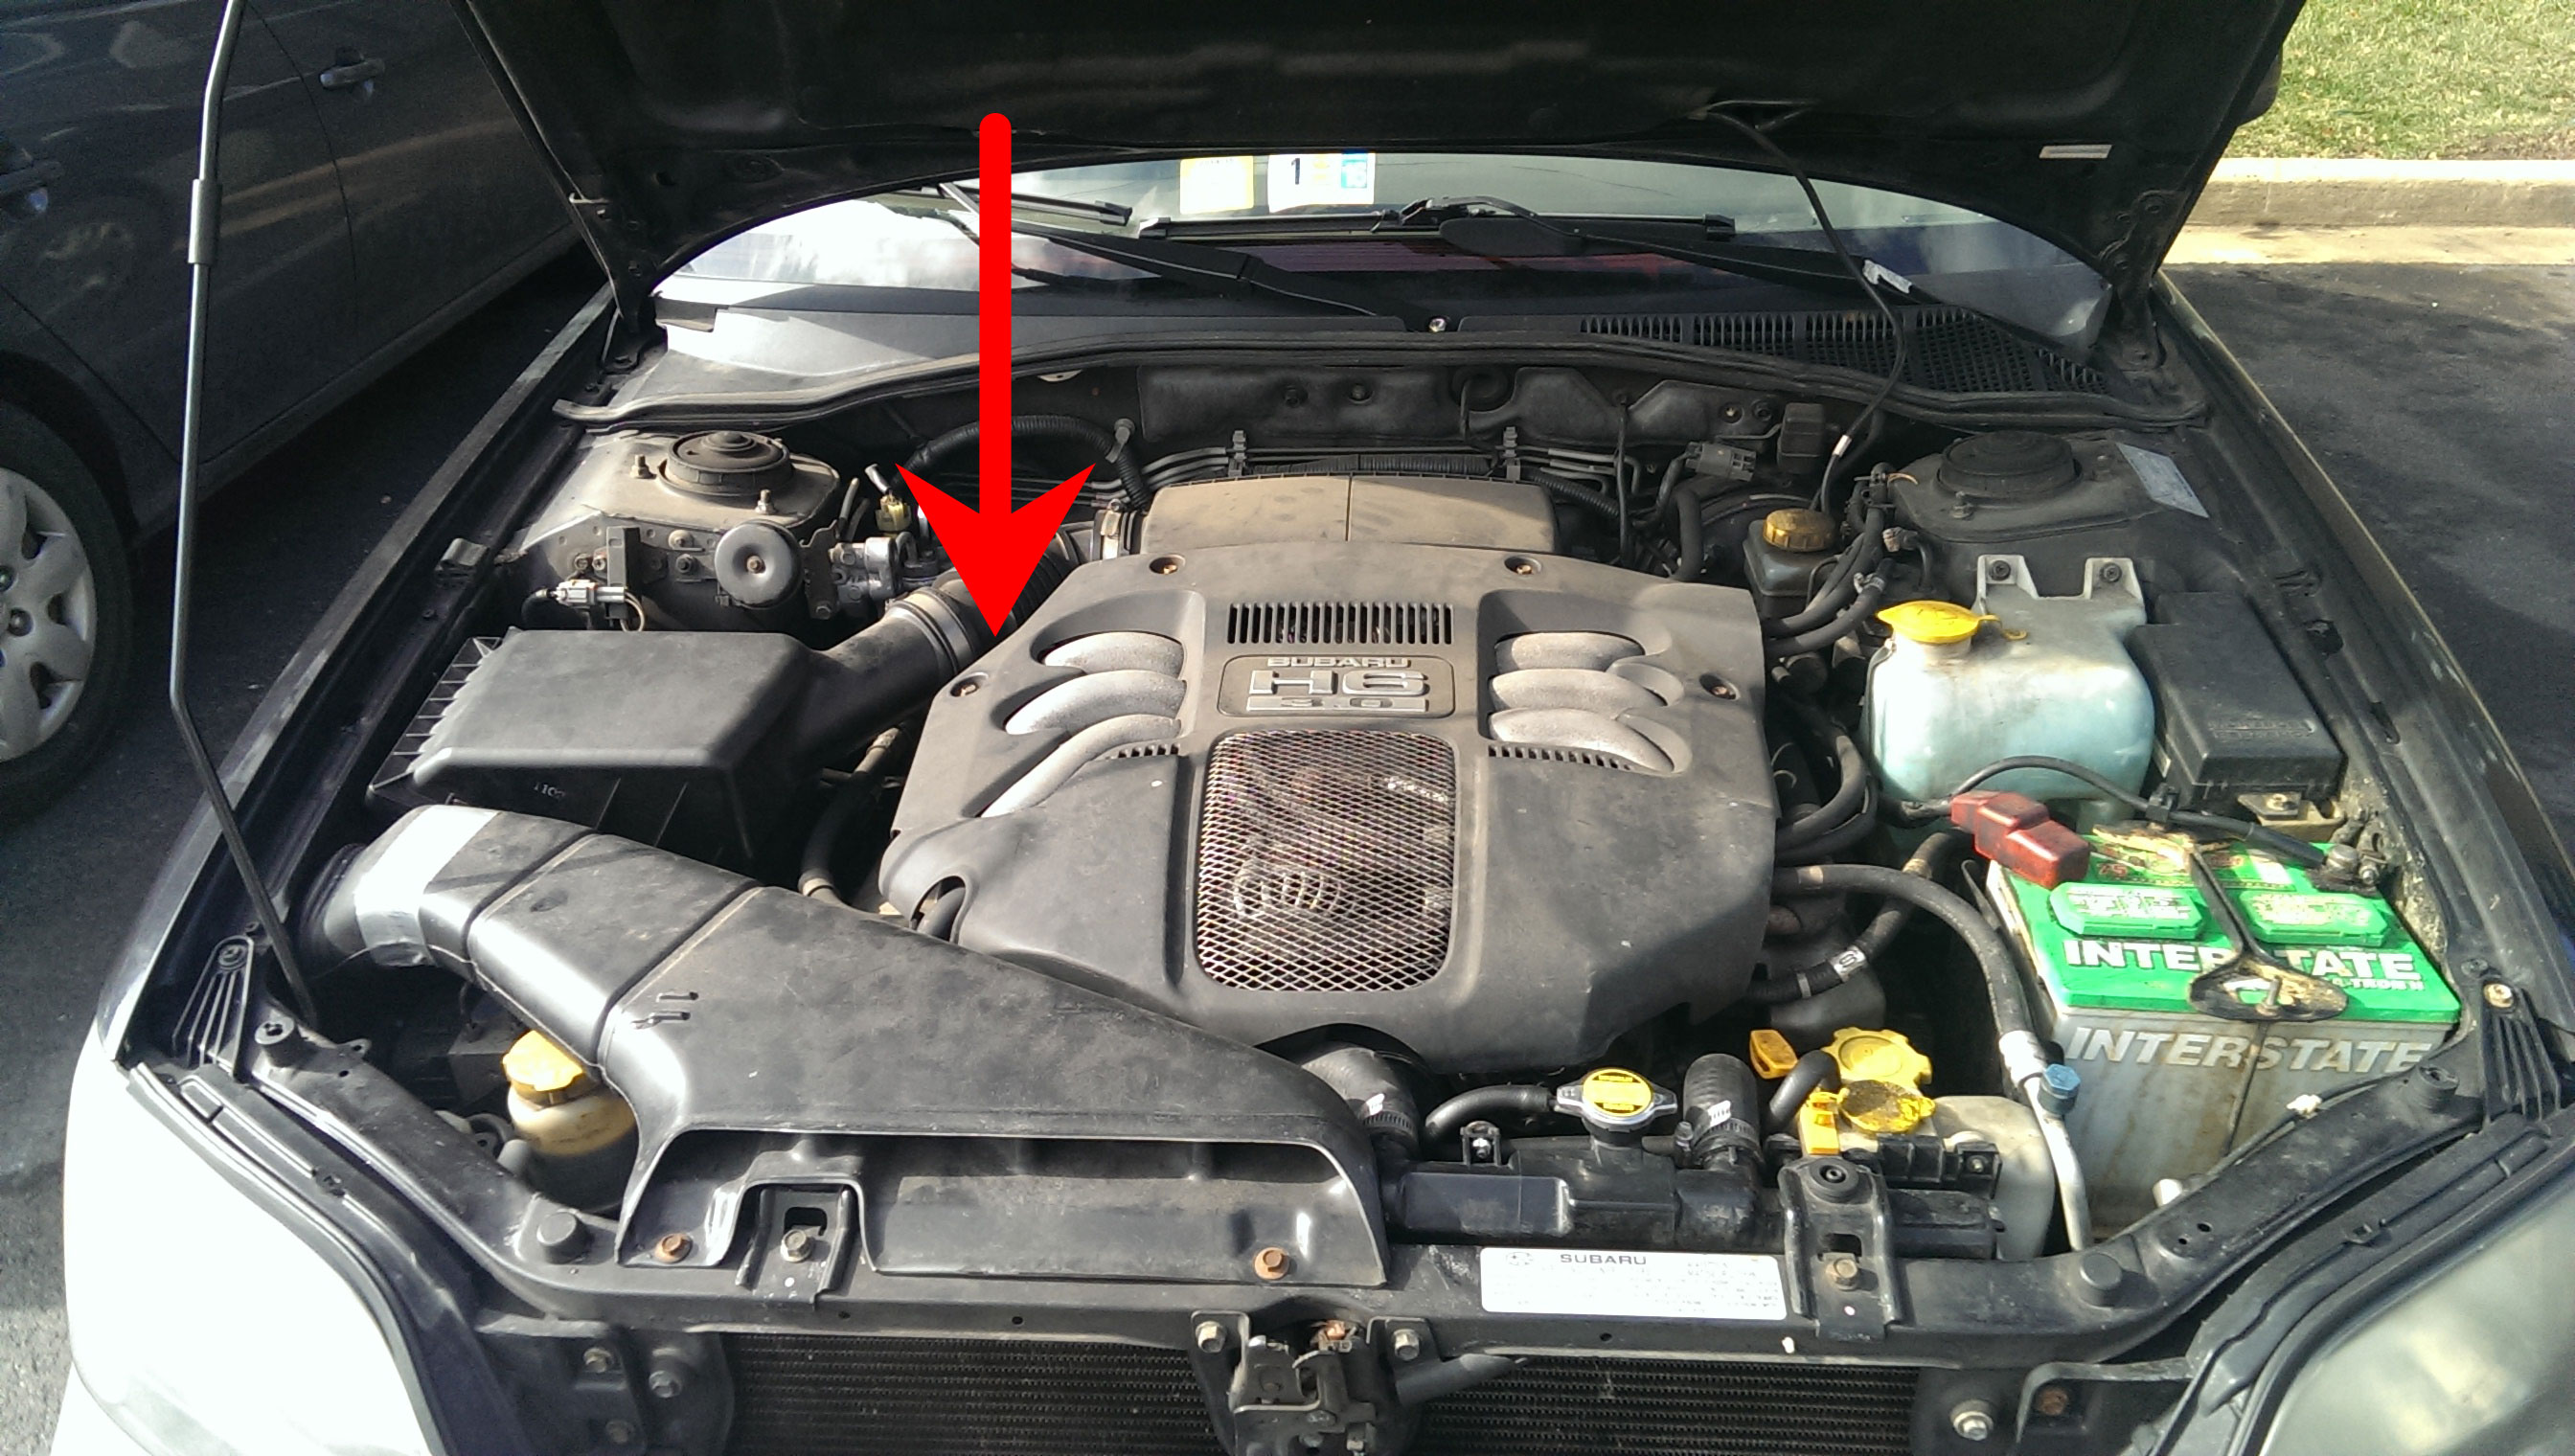 2008 Charger Fuse Diagram furthermore Watch moreover Post your subaru easter eggshidden features here moreover Watch moreover Land 20Rover Defender. on subaru relay location